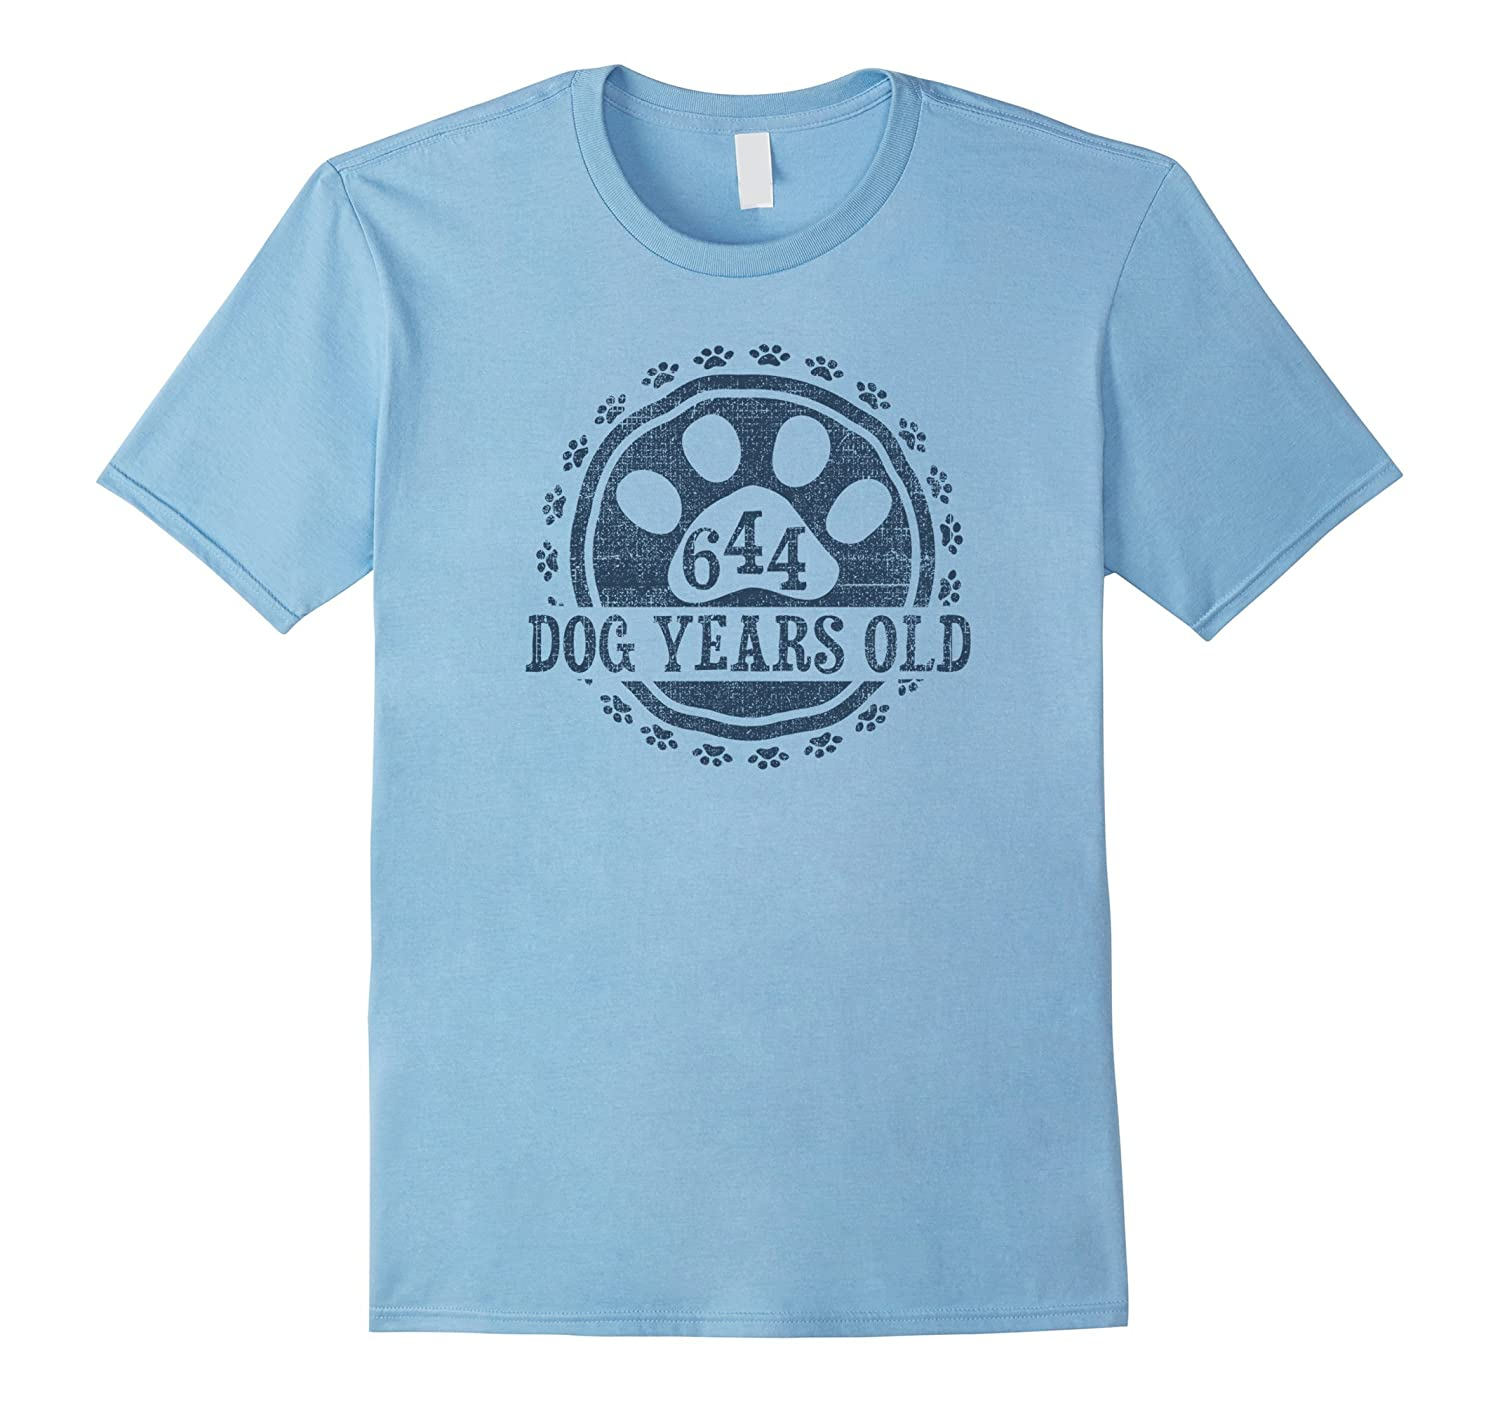 644 Dog Years Old 92 Human Yrs Old 92nd Birthday Gift Shirt-PL